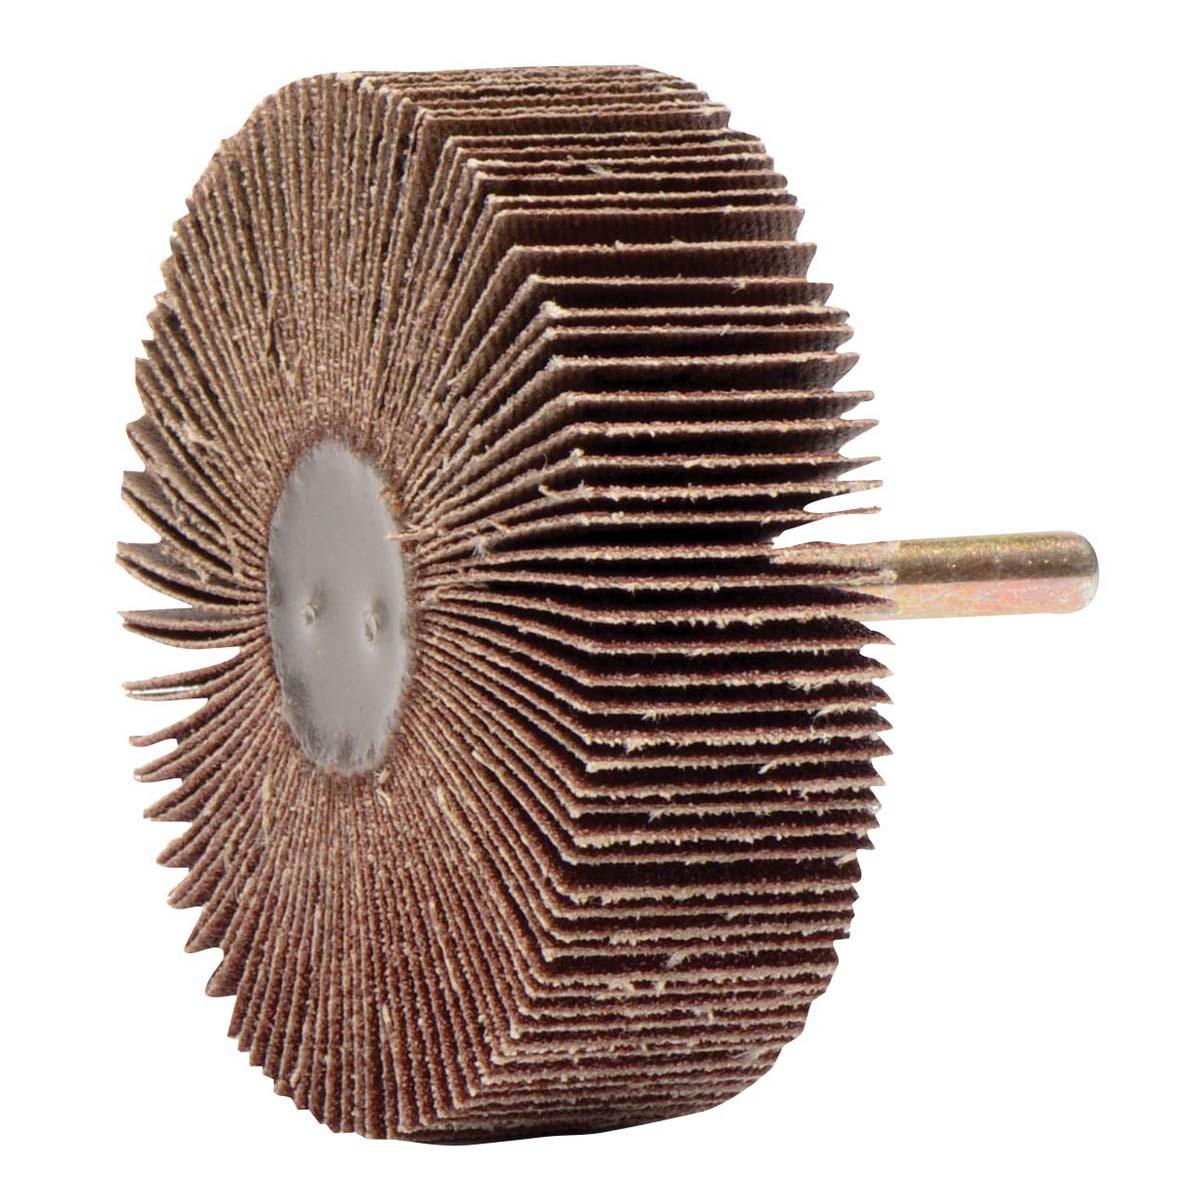 "3"" x 1"" Tiger Coated Abrasive Flap Wheel, 1/4"" Stem, 80AO - CA-3 X 1 X 80 GRIT"